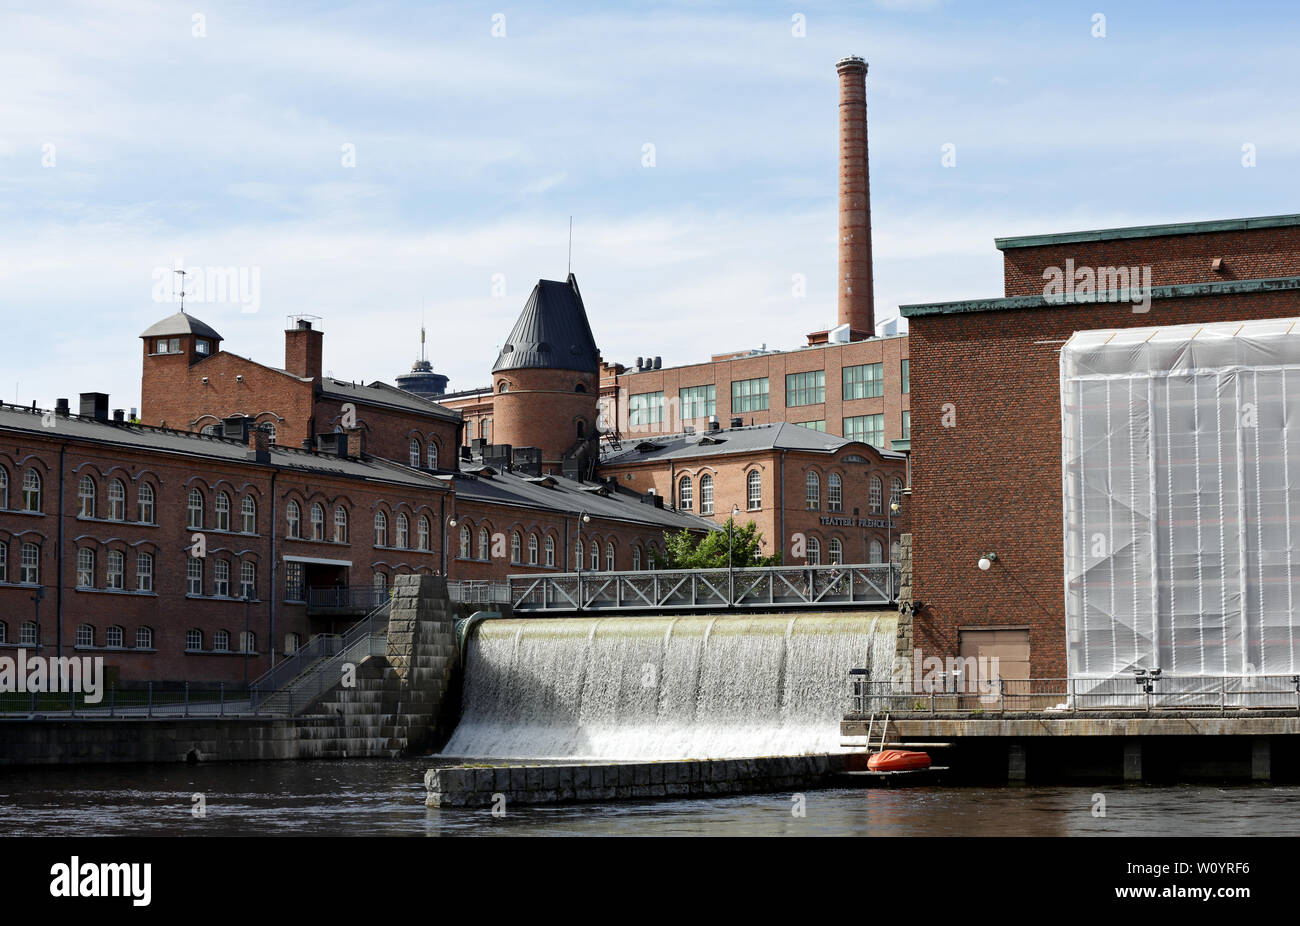 Tampere Finland 06/12/2019  Tammerkoski (rapids in Tampere) flowing in the area of  Tampella and Finlayson - Stock Image